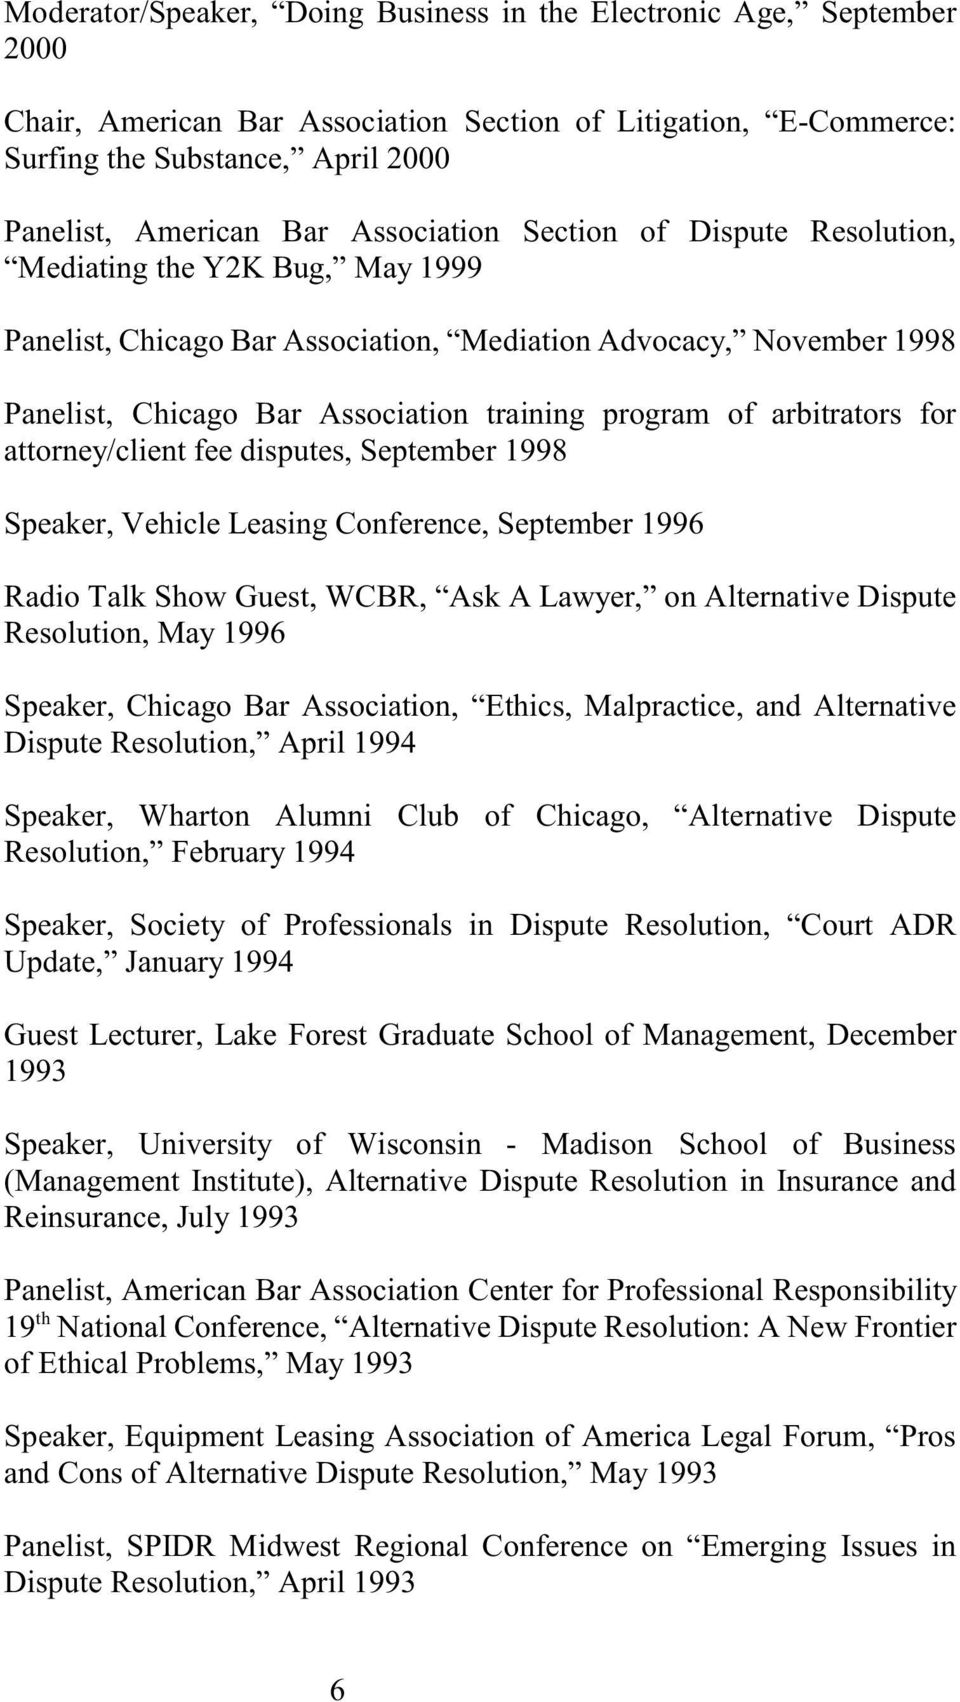 arbitrators for attorney/client fee disputes, September 1998 Speaker, Vehicle Leasing Conference, September 1996 Radio Talk Show Guest, WCBR, Ask A Lawyer, on Alternative Dispute Resolution, May 1996